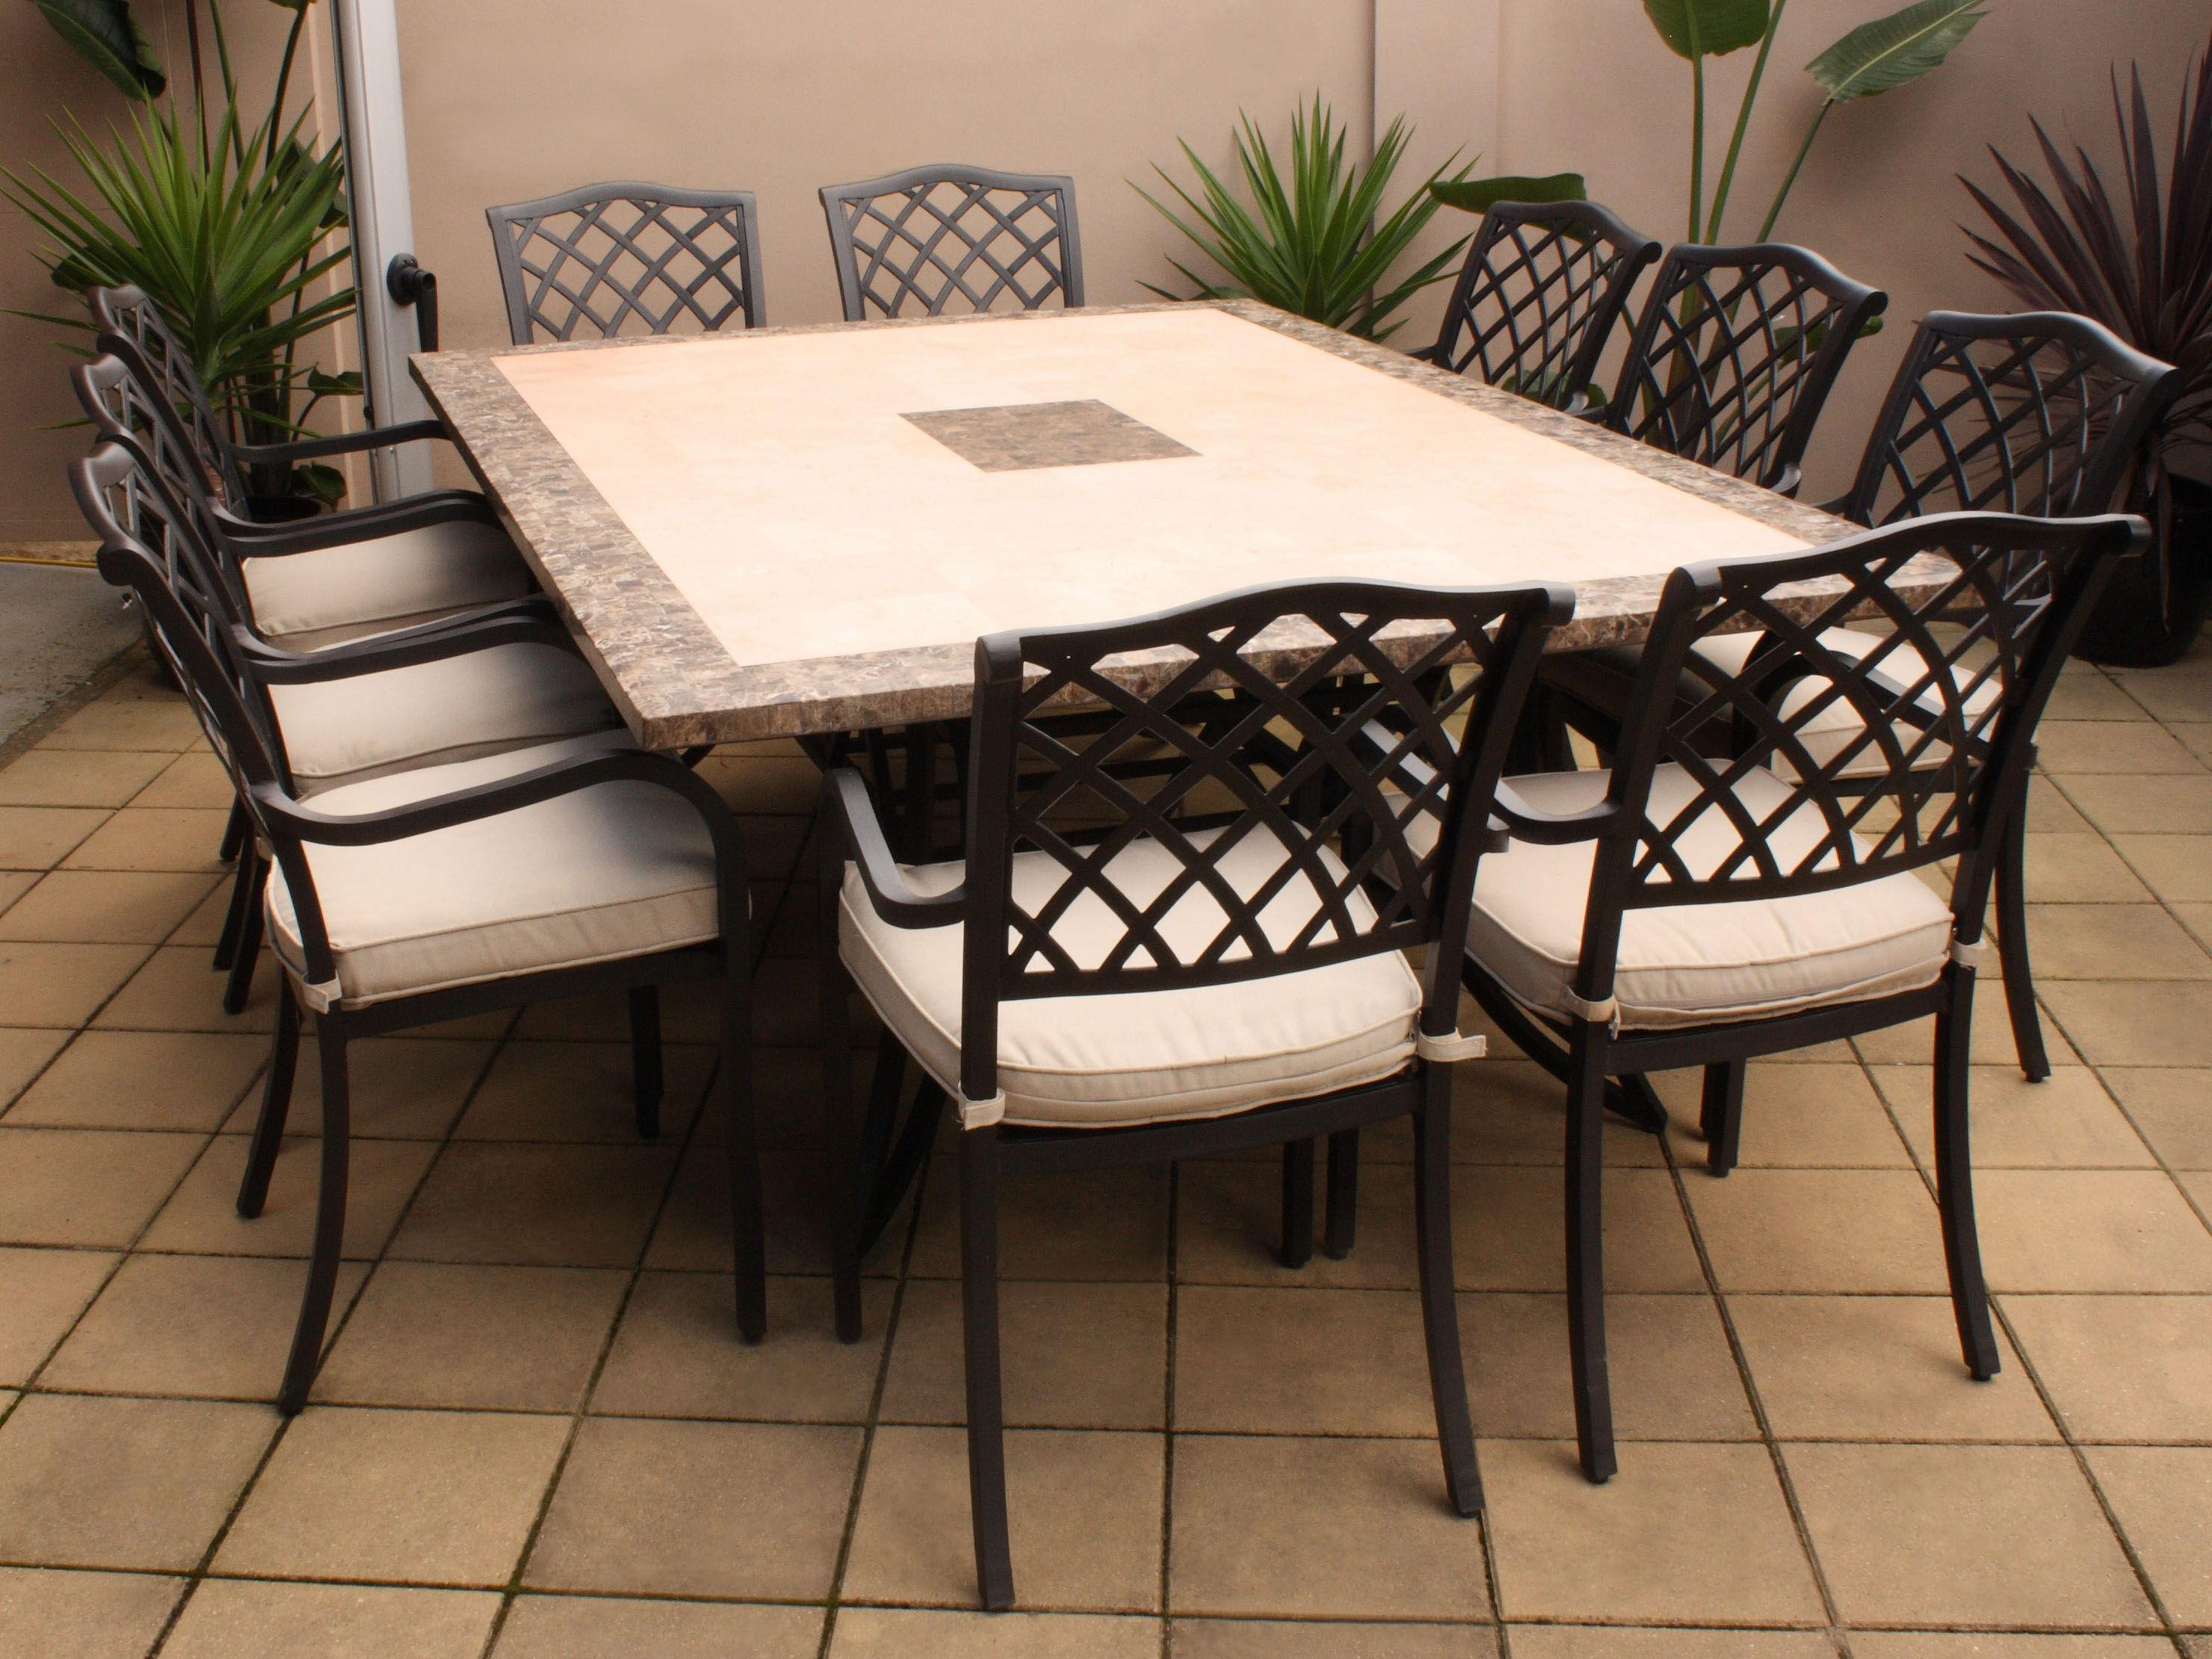 Furniture: Soft Brown Vinyl Floor Natural Lighting Outdoor Dining Room  White Upholstered Chairs Black Paint Metal Material Four Legs Strong Base  Large ...